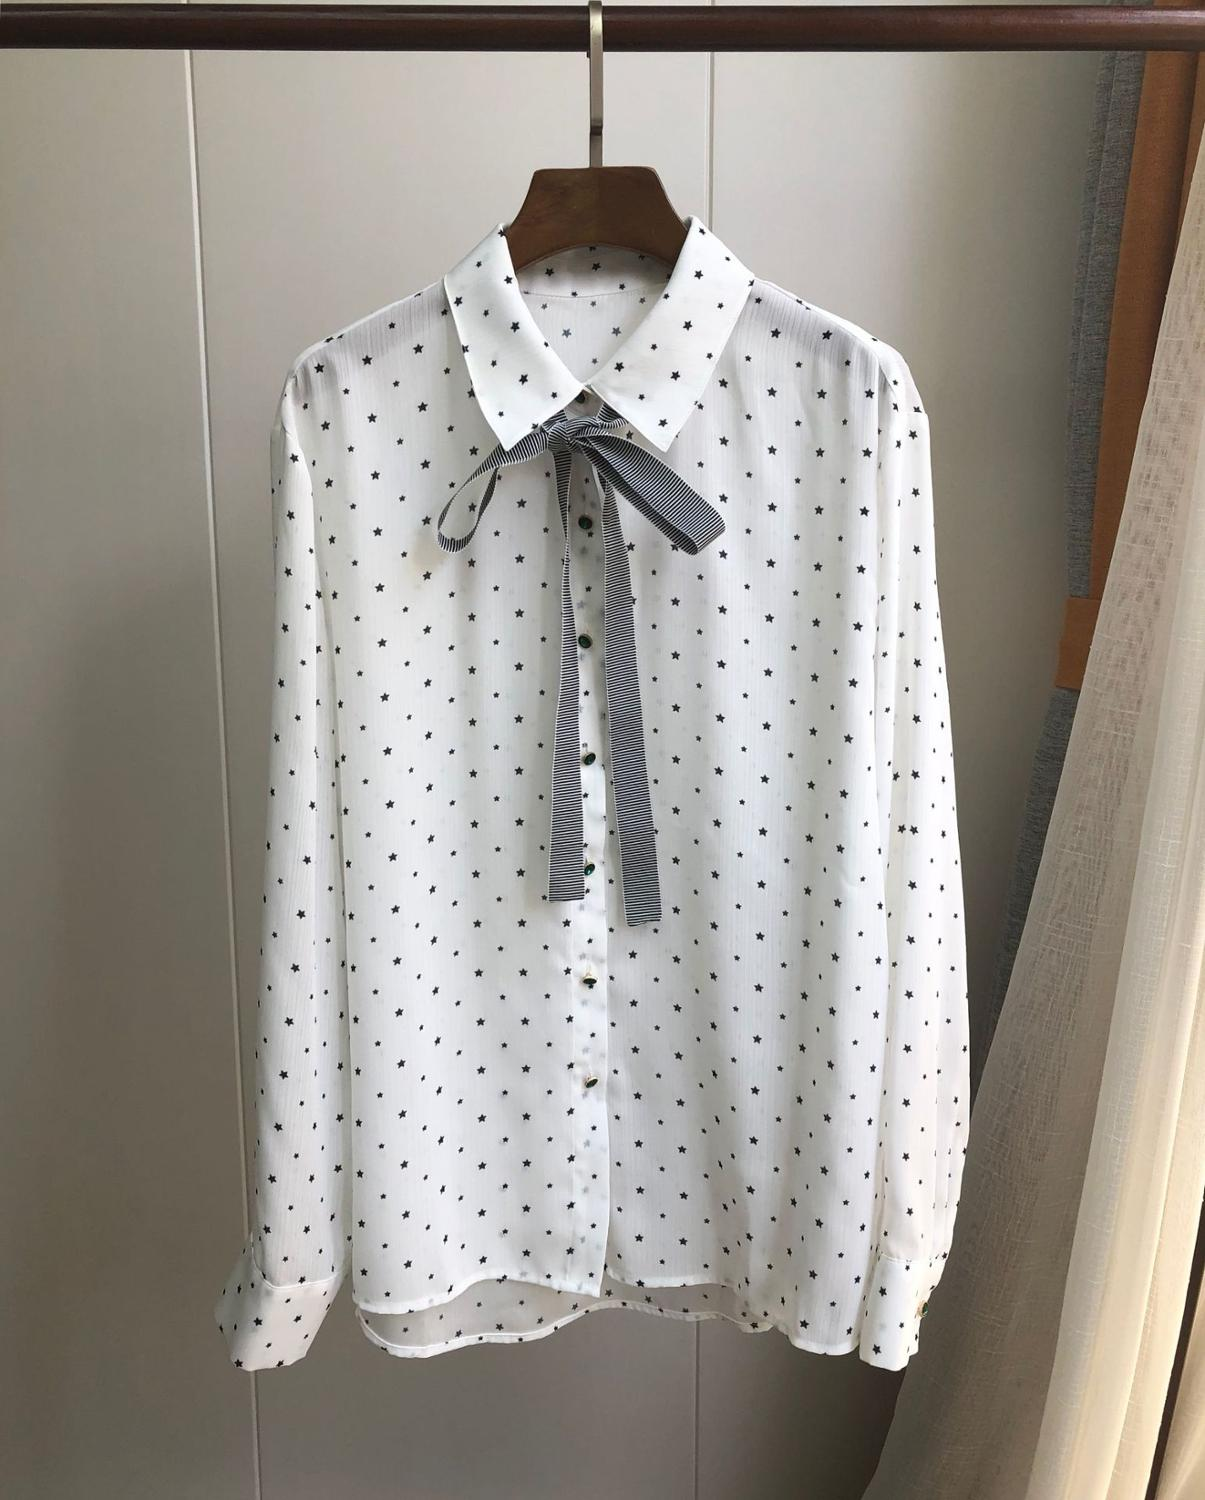 Early Autumn White Women's Shirt long sleeve blouse Stars printted Exquisite Emerald Buckle Bow Tie ladies office top